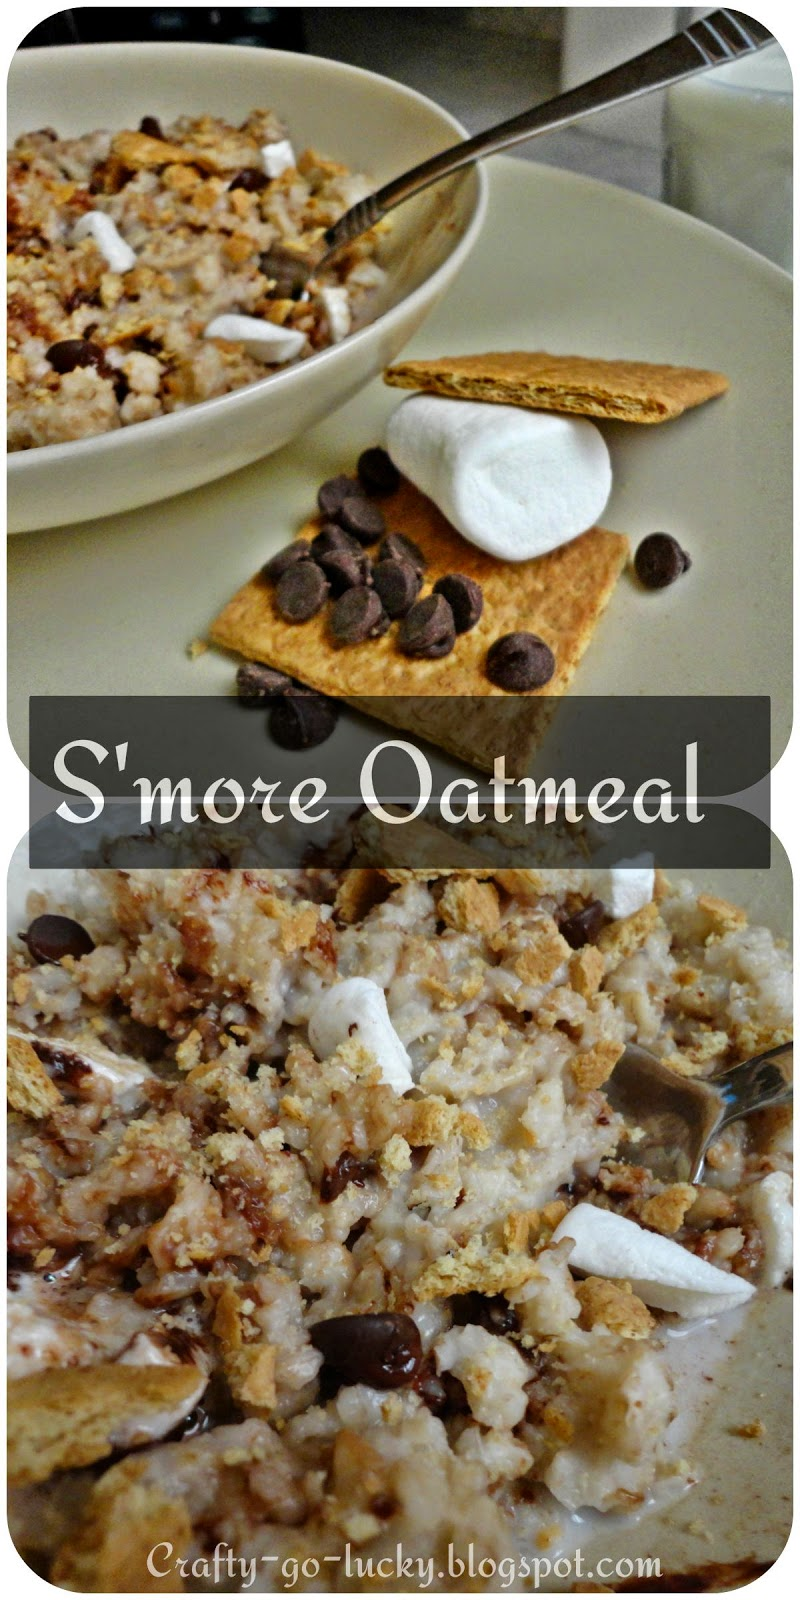 S'more Oatmeal [Tried & True-ly Yummy!]